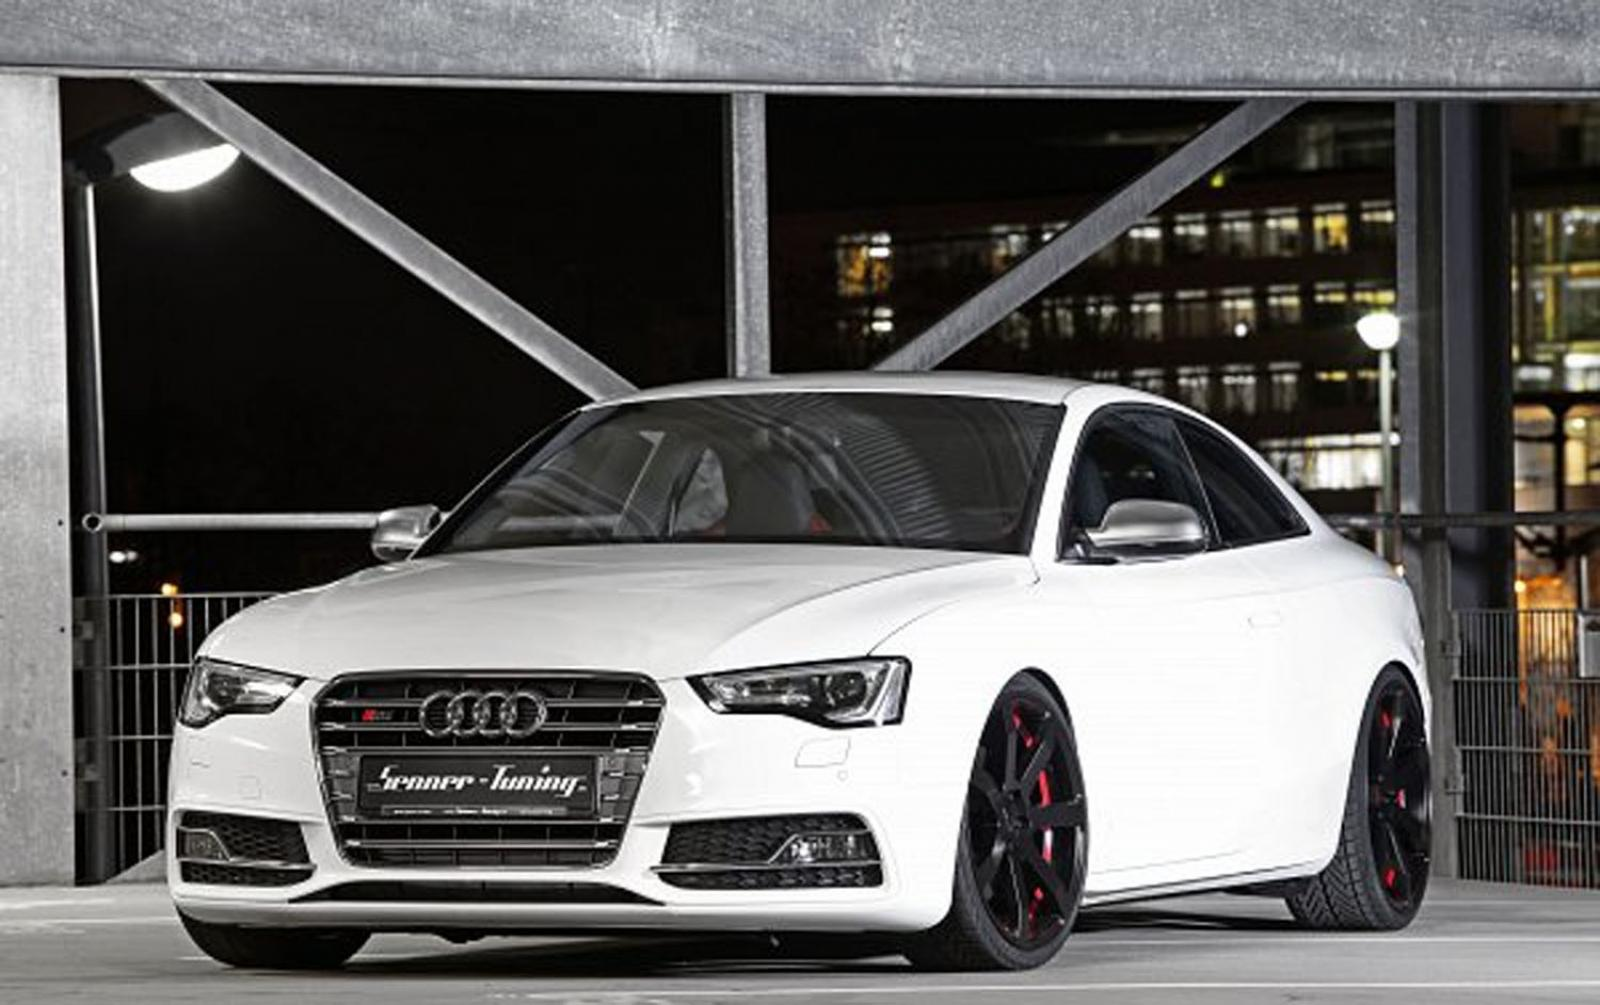 2012 Audi S5 - Information and photos - ZombieDrive